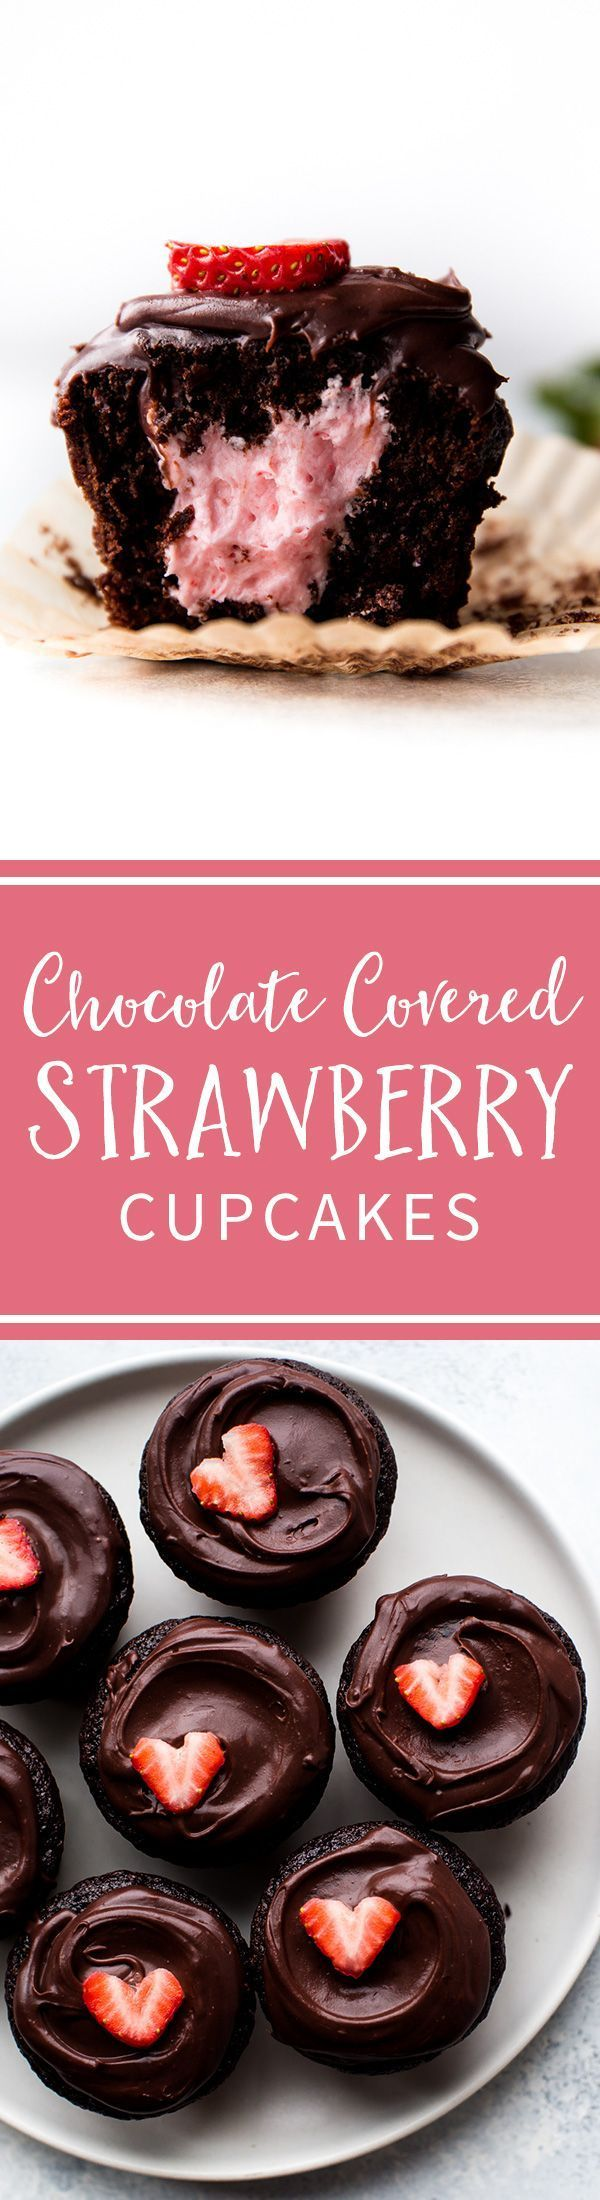 Deliciously indulgent and fudgy chocolate cupcakes filled with strawberry buttercream and topped with chocolate ganache. Chocolate covered strawberry cupcakes on sallysbakingaddiction.com